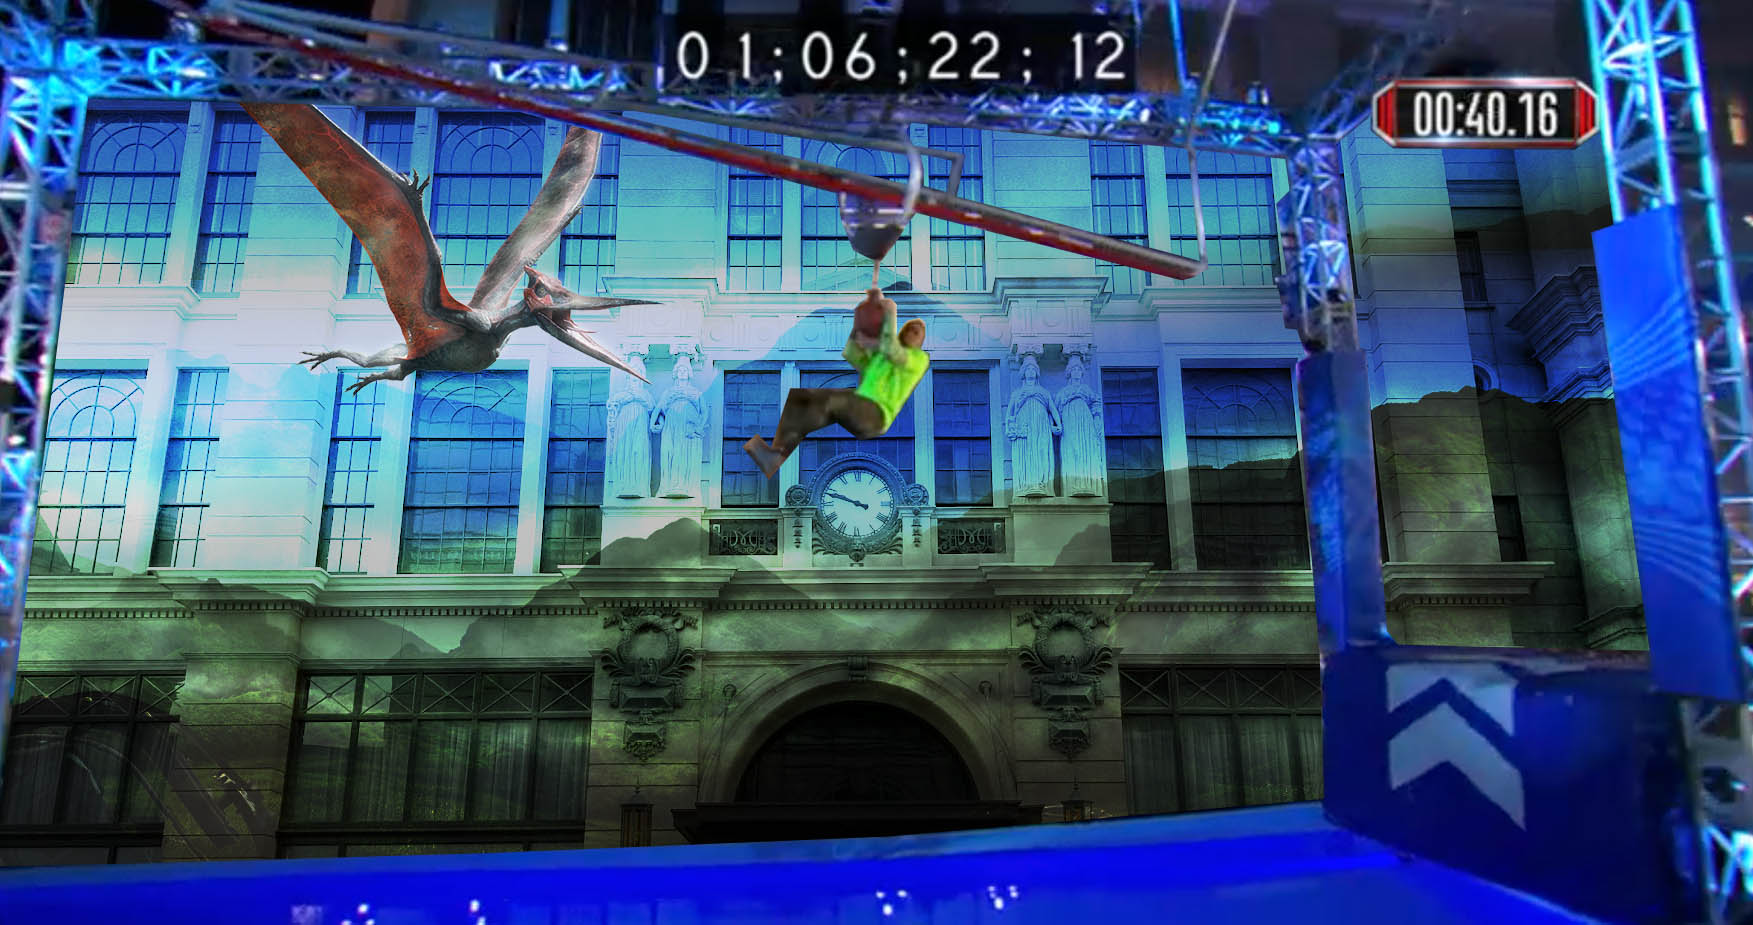 Architectural Projection Mapping for Movie Promotion